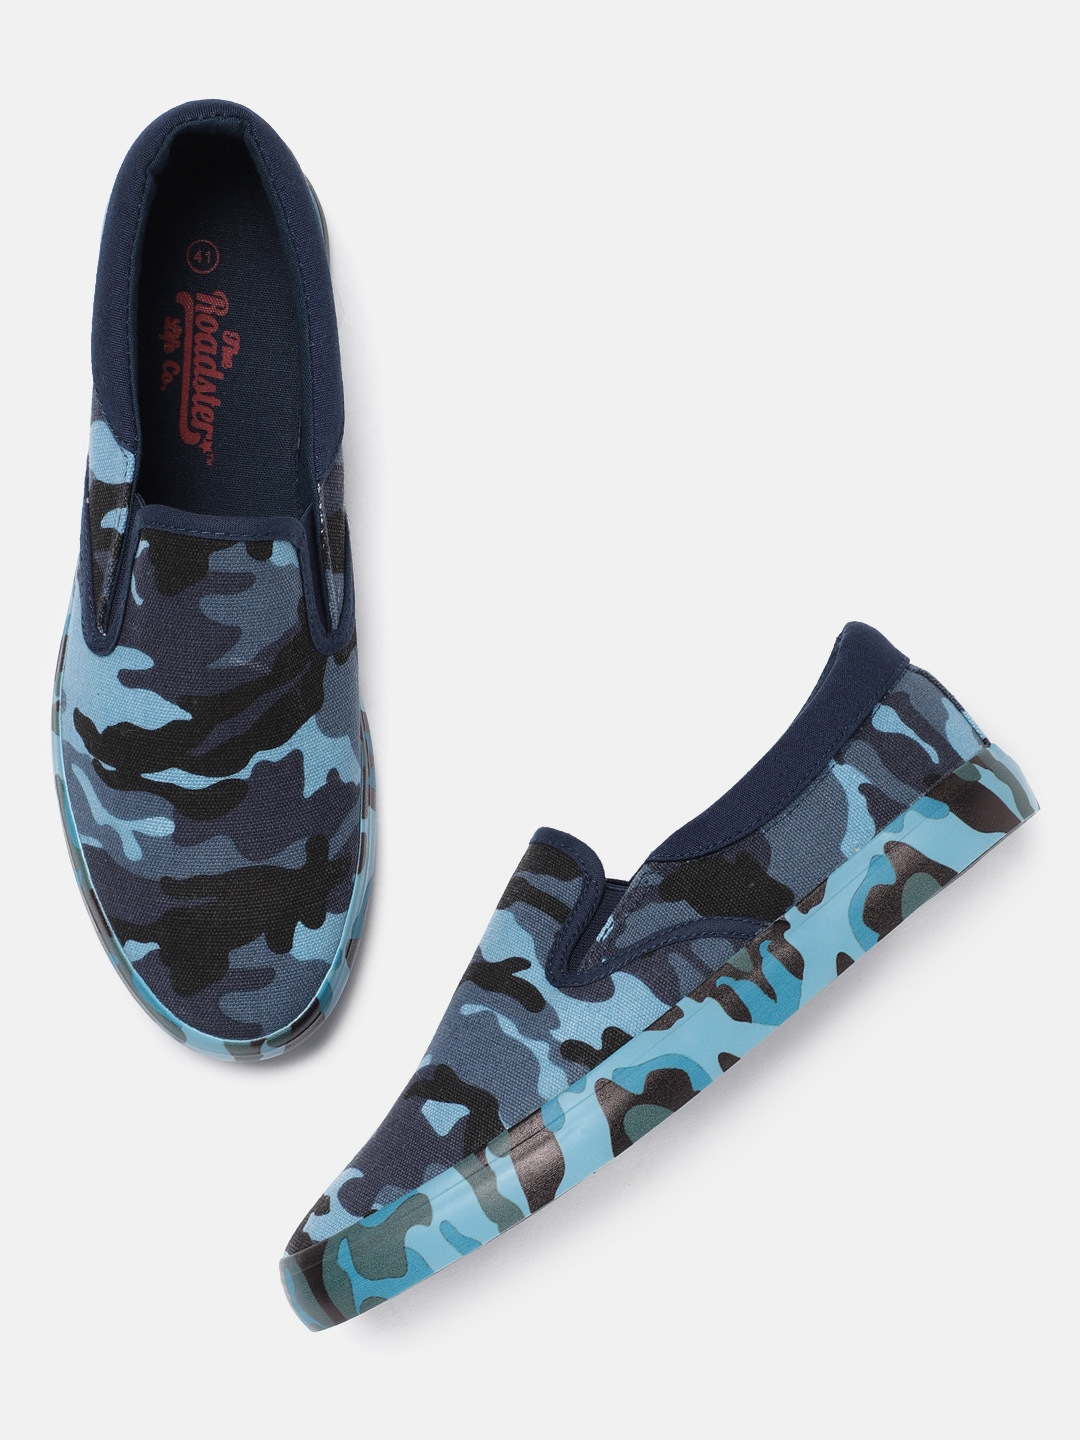 11da2918f6716 Buy Roadster Men Blue Camouflage Print Slip On Sneakers - Casual ...